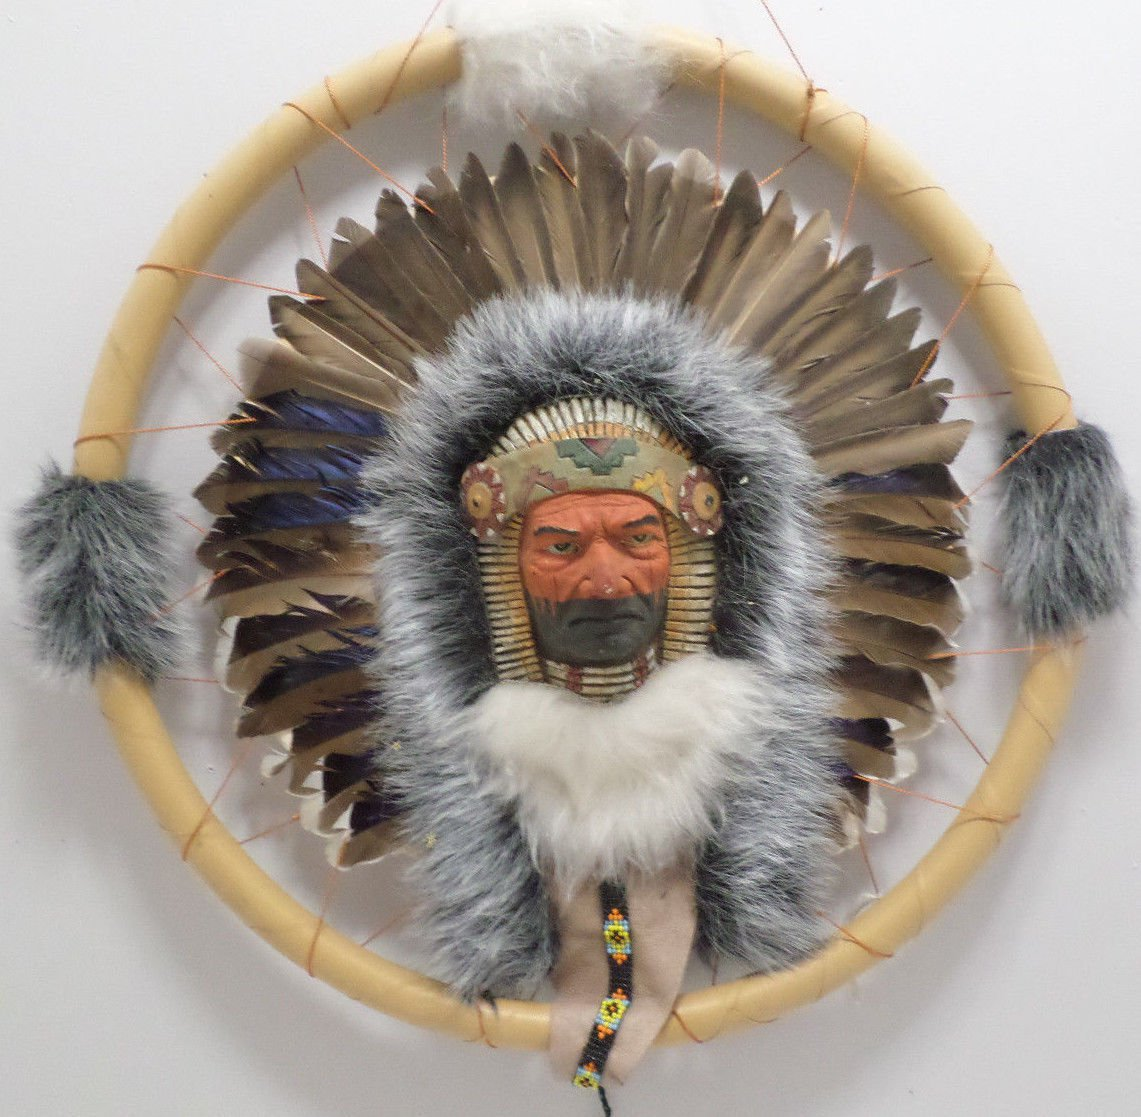 "Dream Catcher 3-D Indian Chief in the Center Beads and Feathers 16"" Diameter"